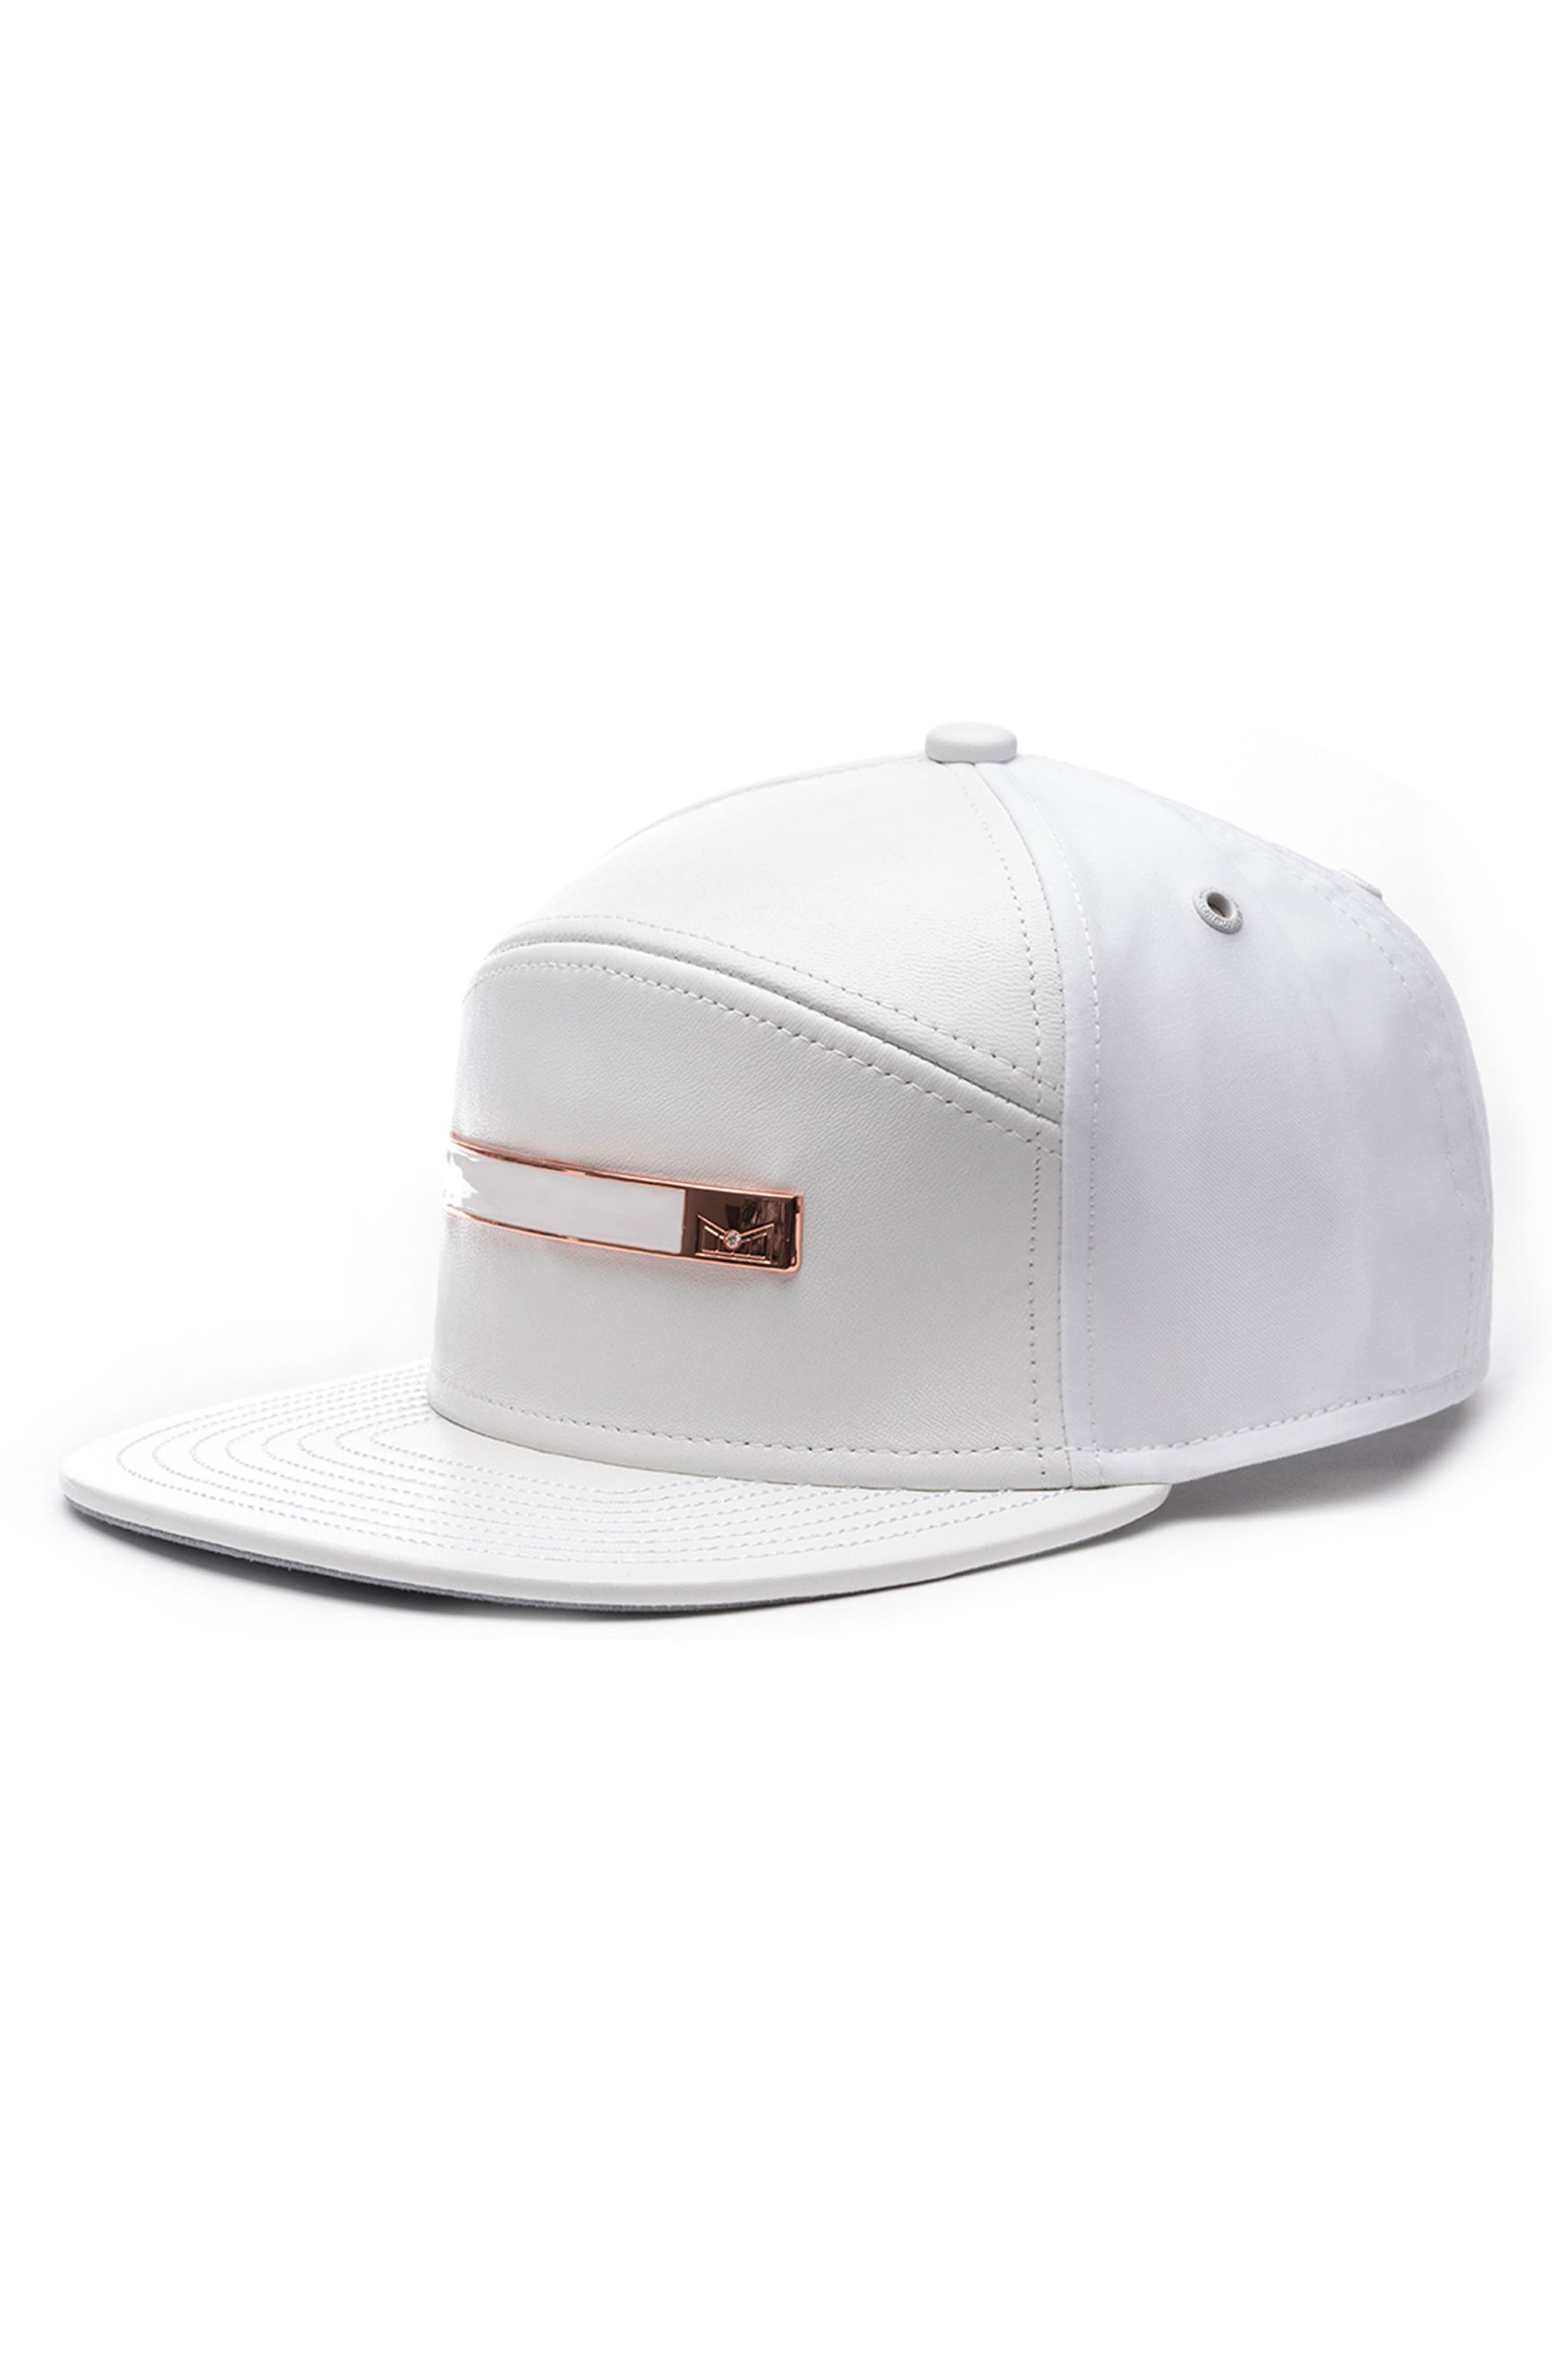 Dynasty V Limited Edition Leather, Cashmere, Wool & Diamond Cap,                         Main,                         color, White